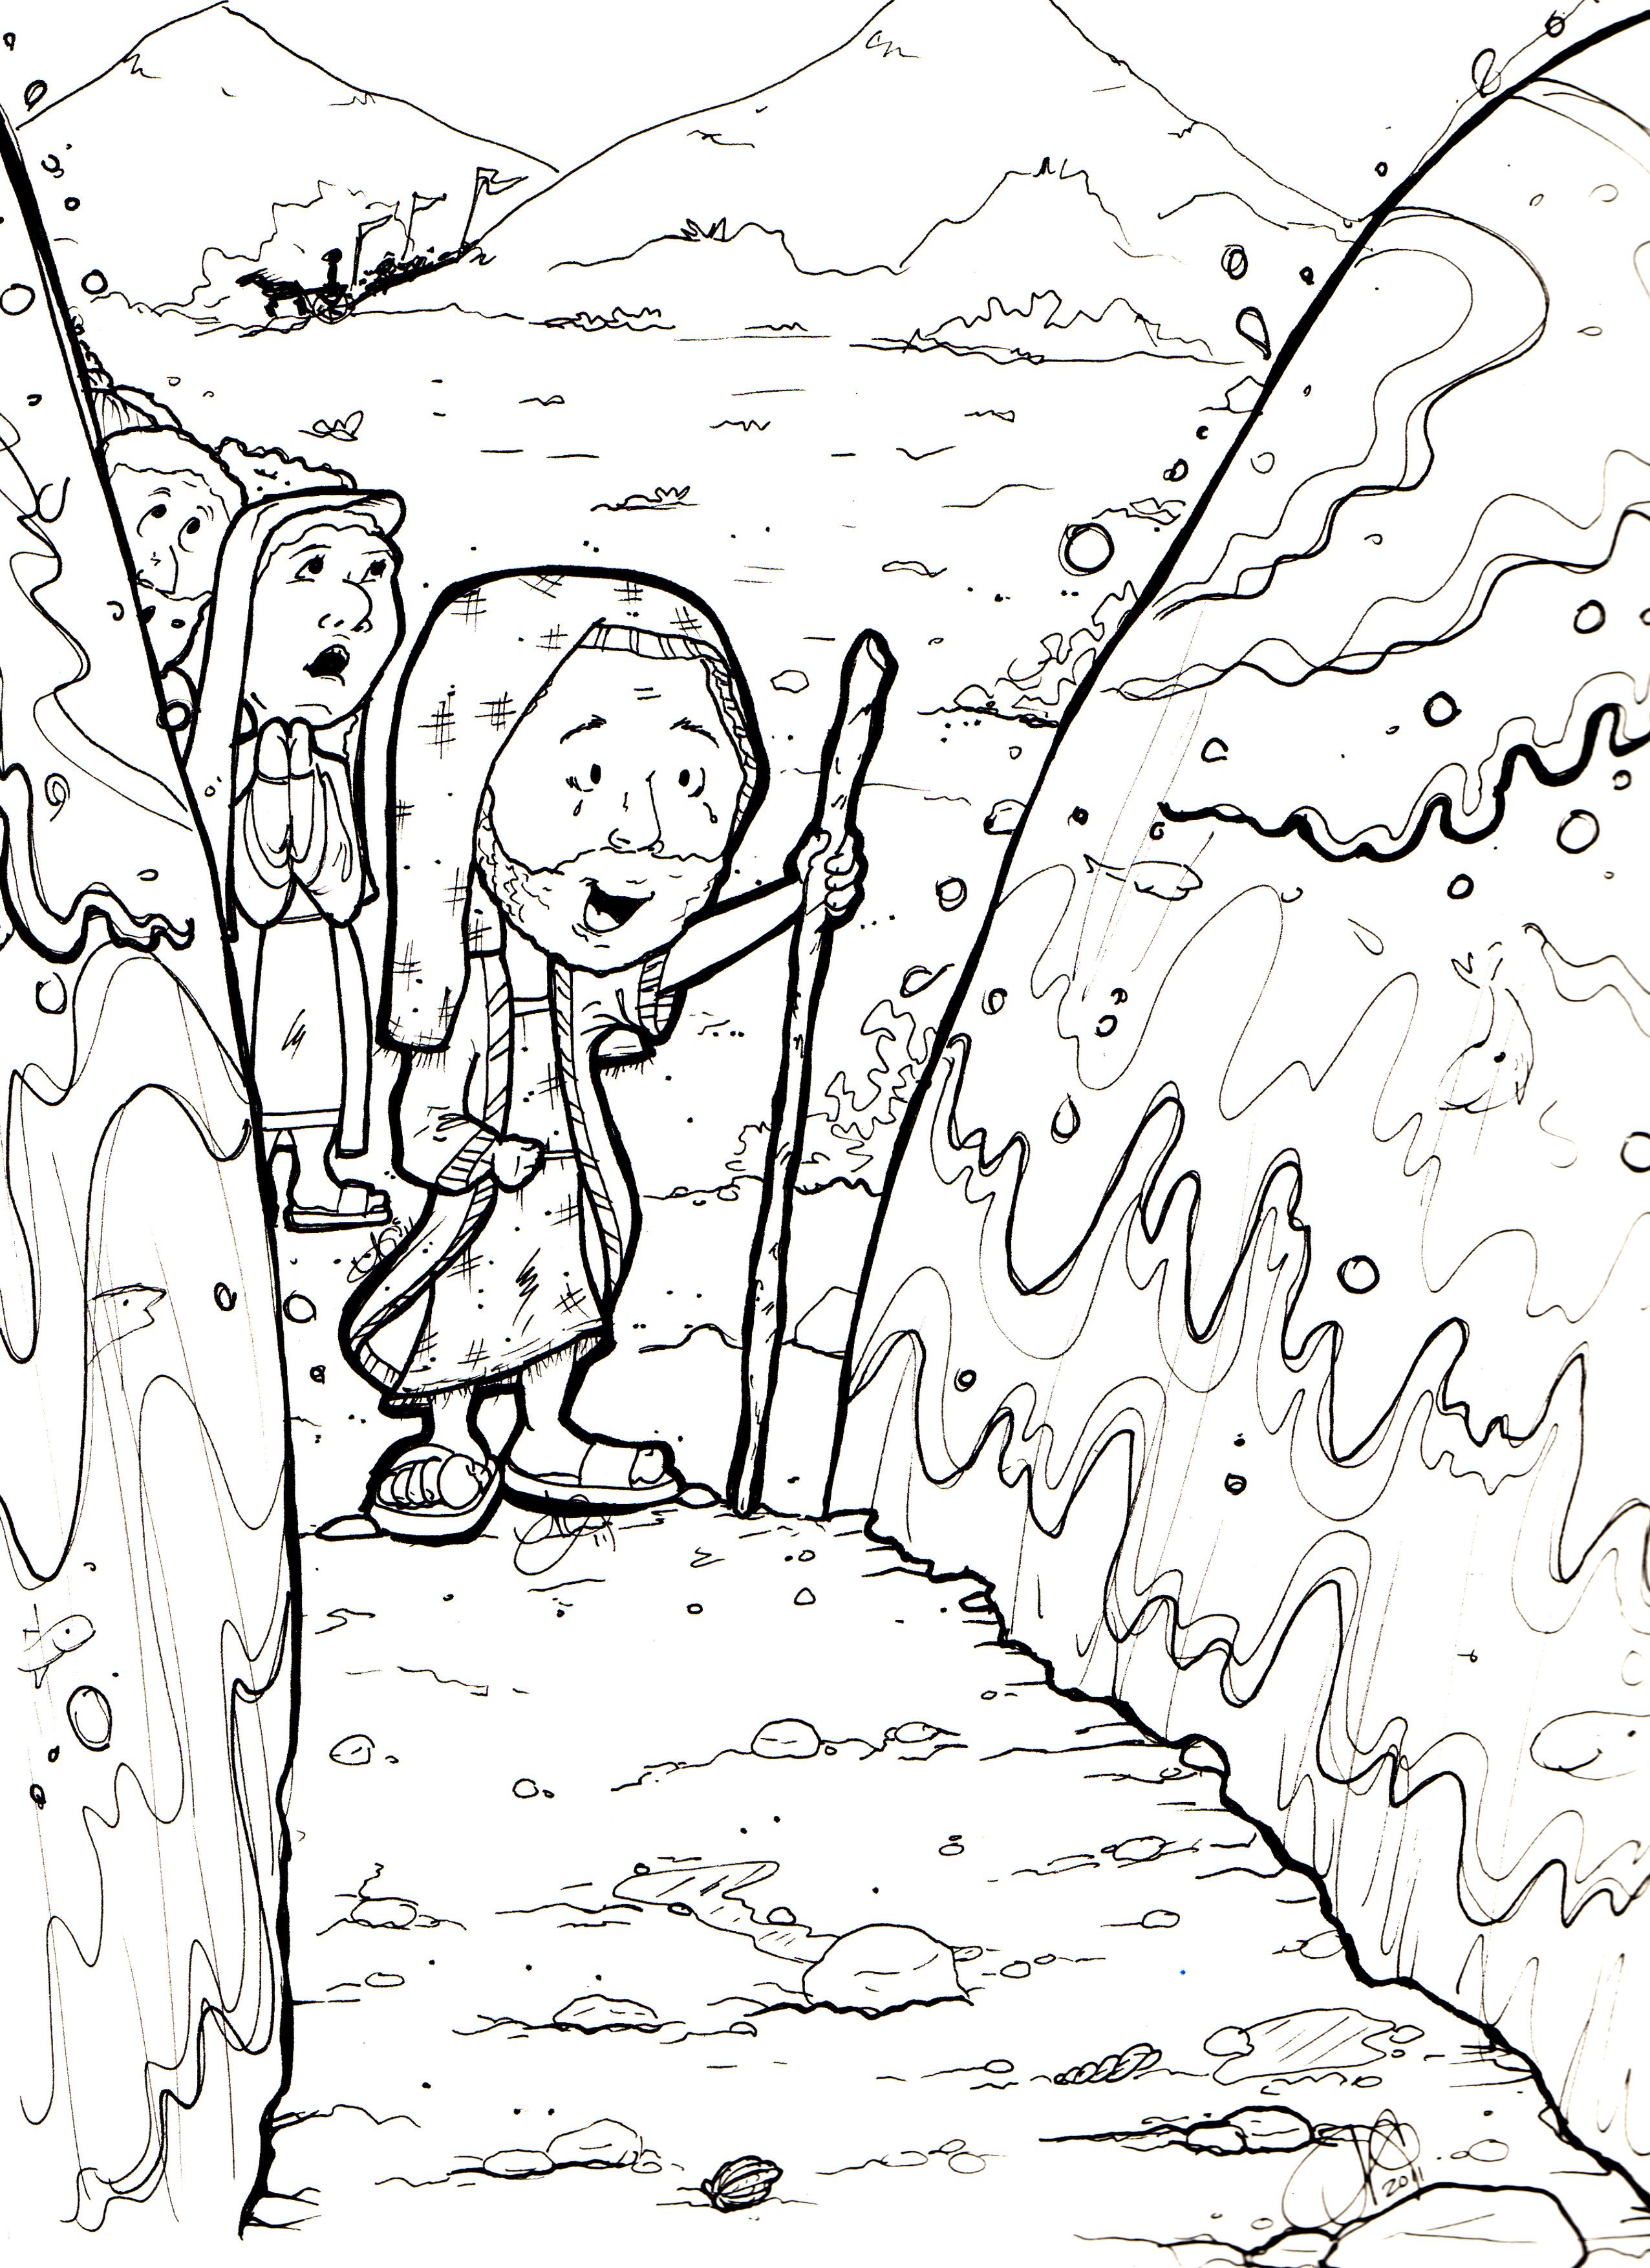 Exodus Parting Of The Red Sea Parting The Red Sea Moses Red Sea Coloring Pages